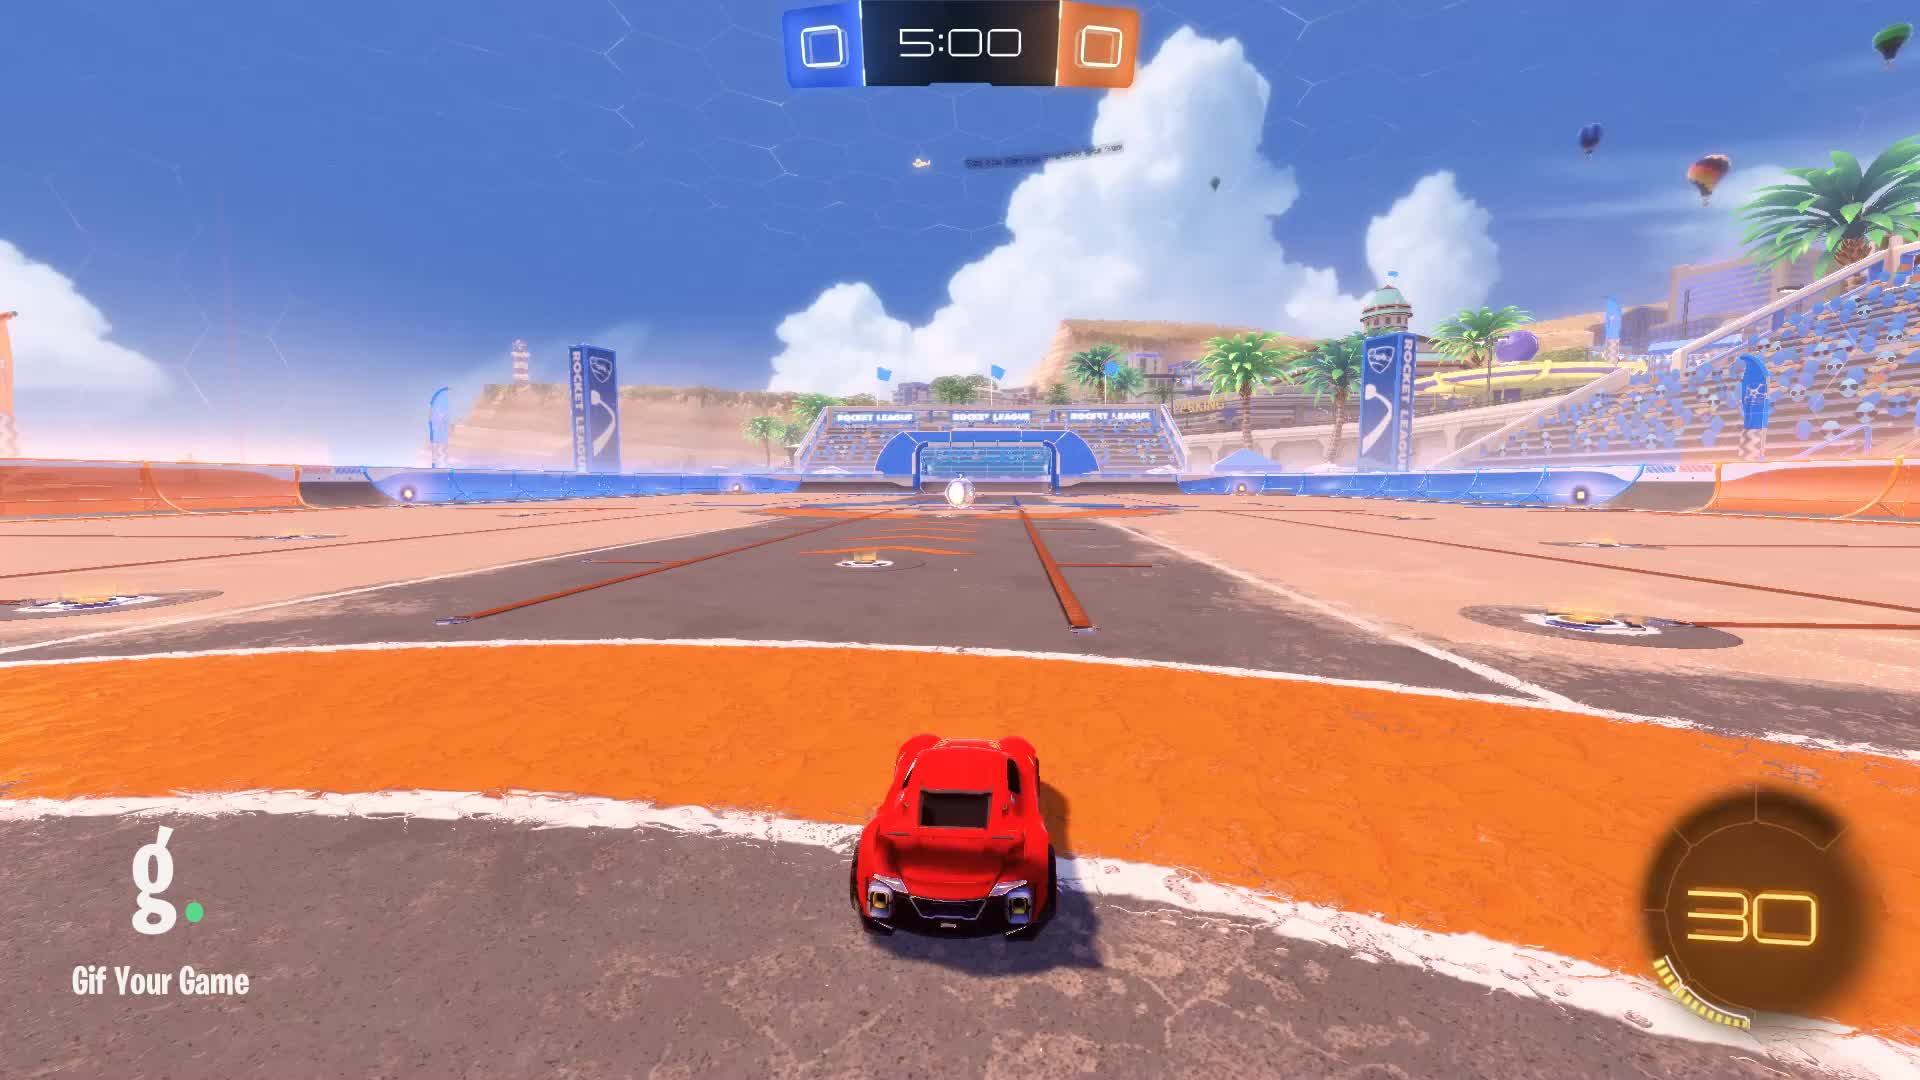 Gif Your Game, GifYourGame, Goal, Rocket League, RocketLeague, tbones, Goal 1: tbones GIFs